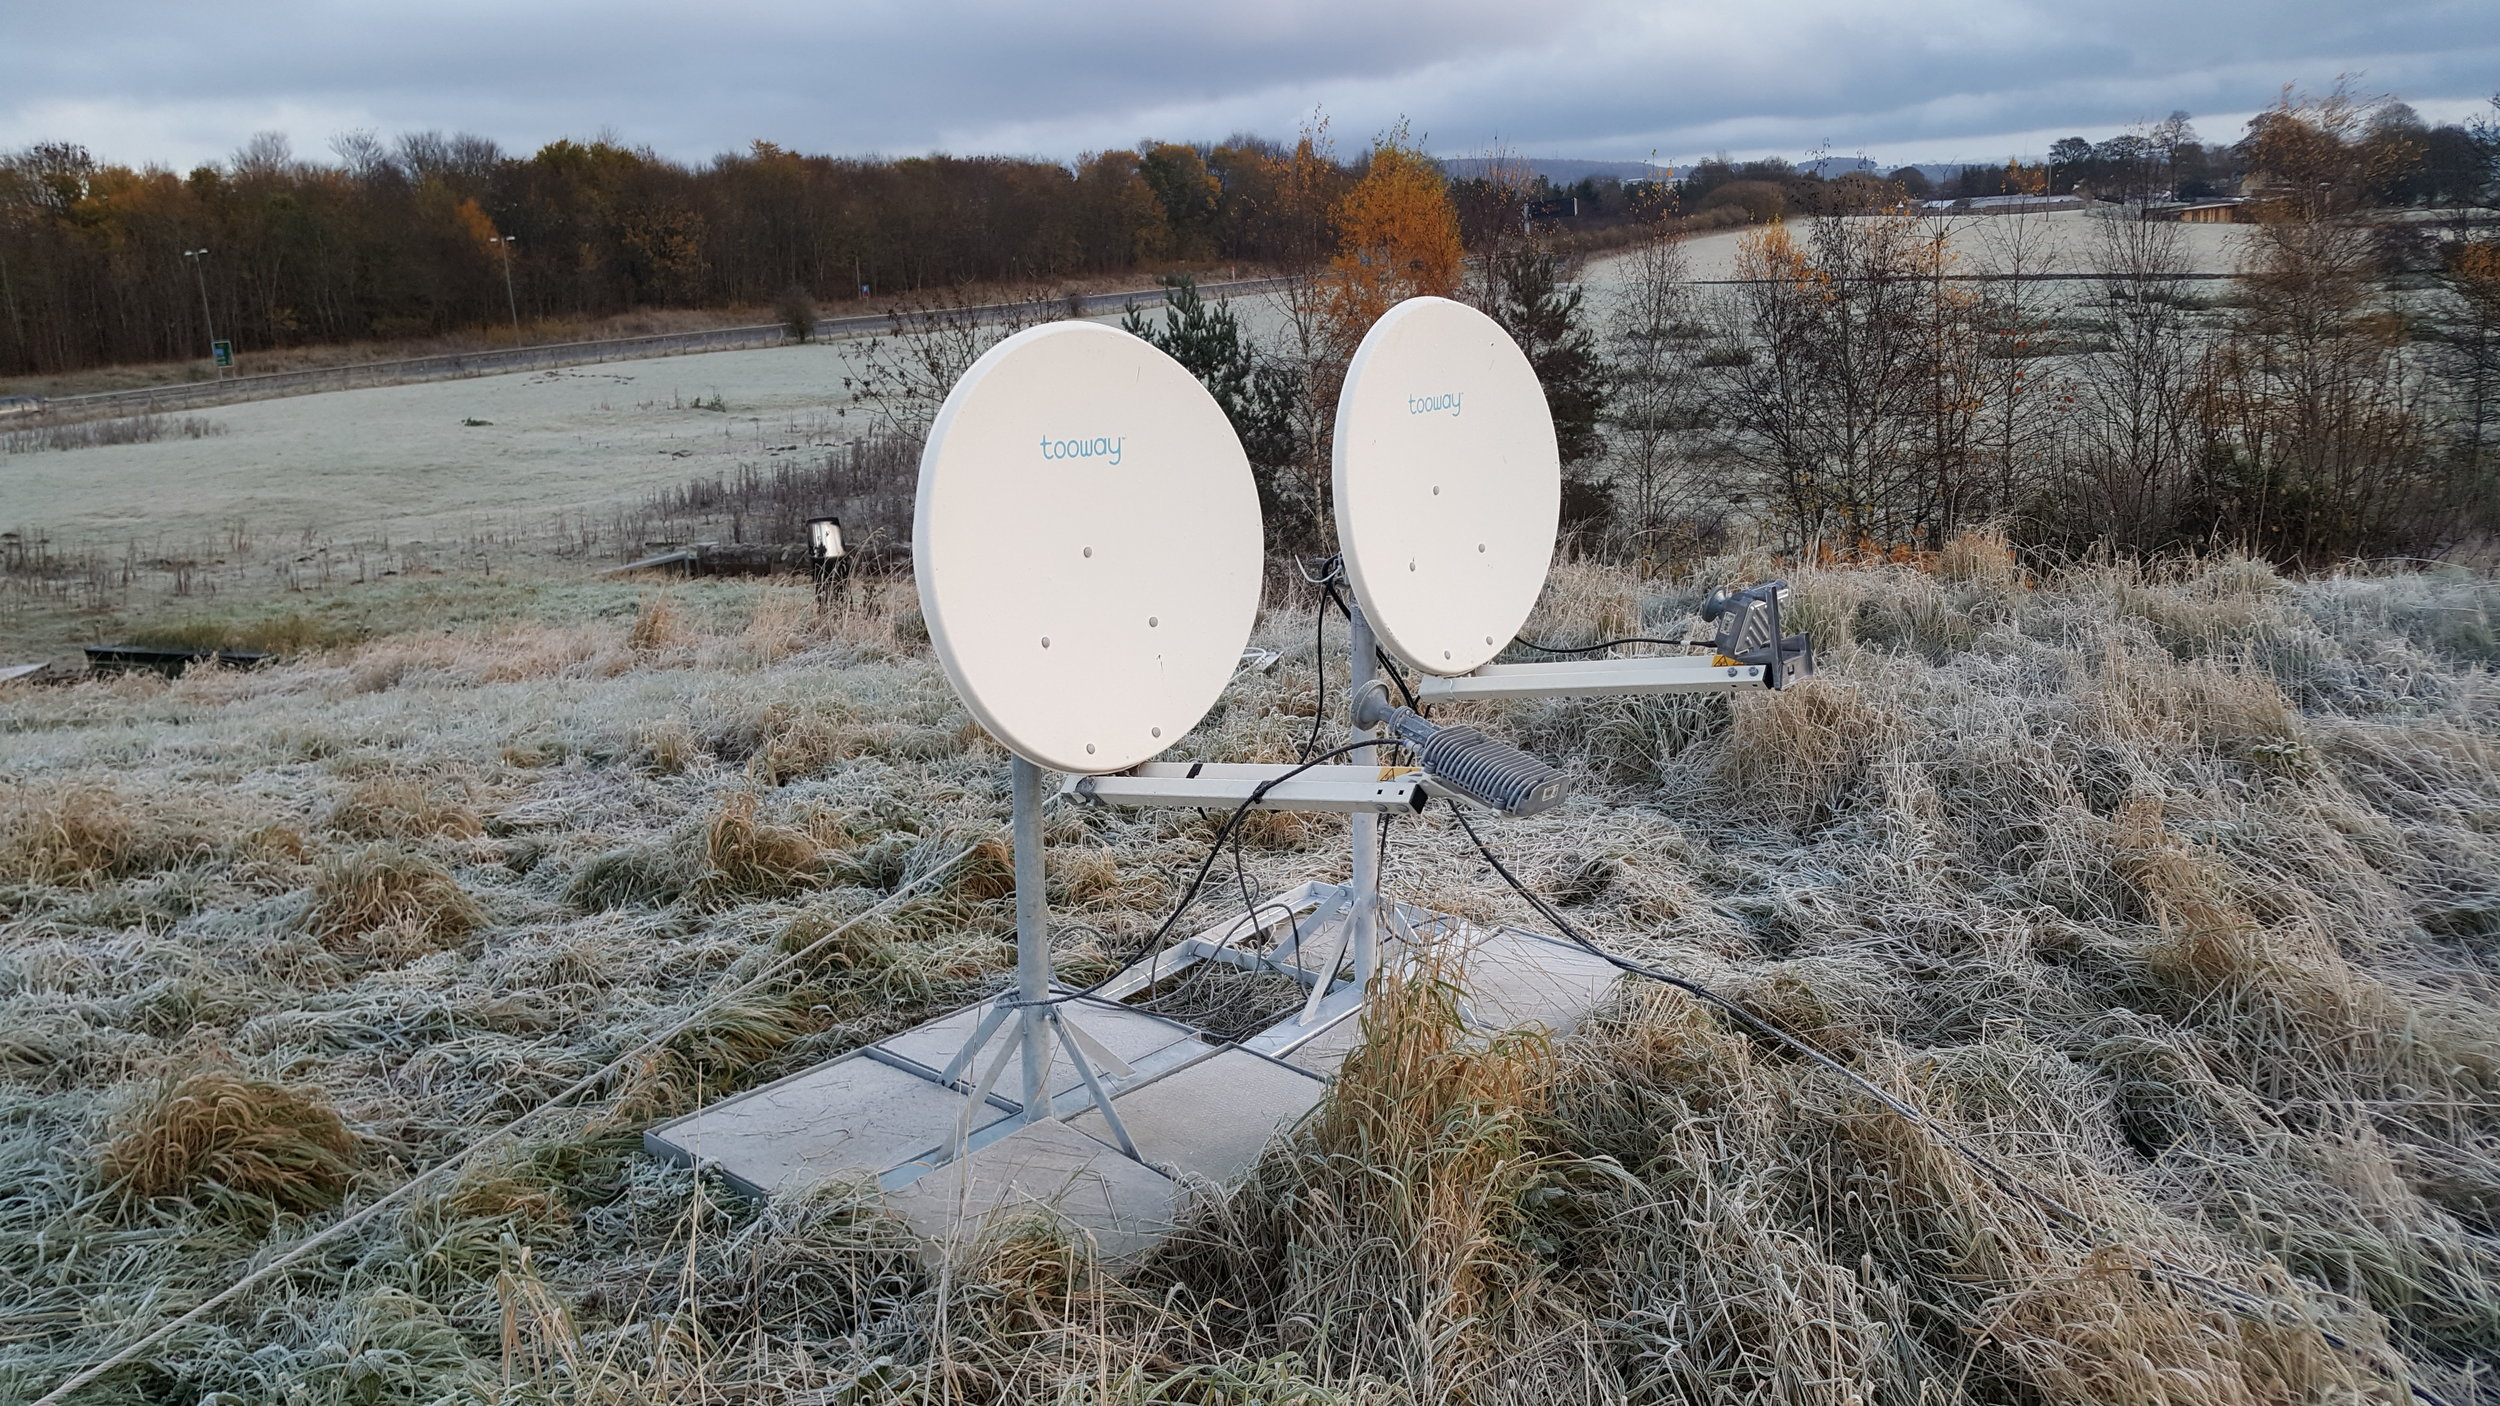 SATELLITE FEEDS: - With 5 flyaway KaSat units available for short-notice day or long-term hire we can have you quickly up and running in remote locations outside mobile coverage areas.